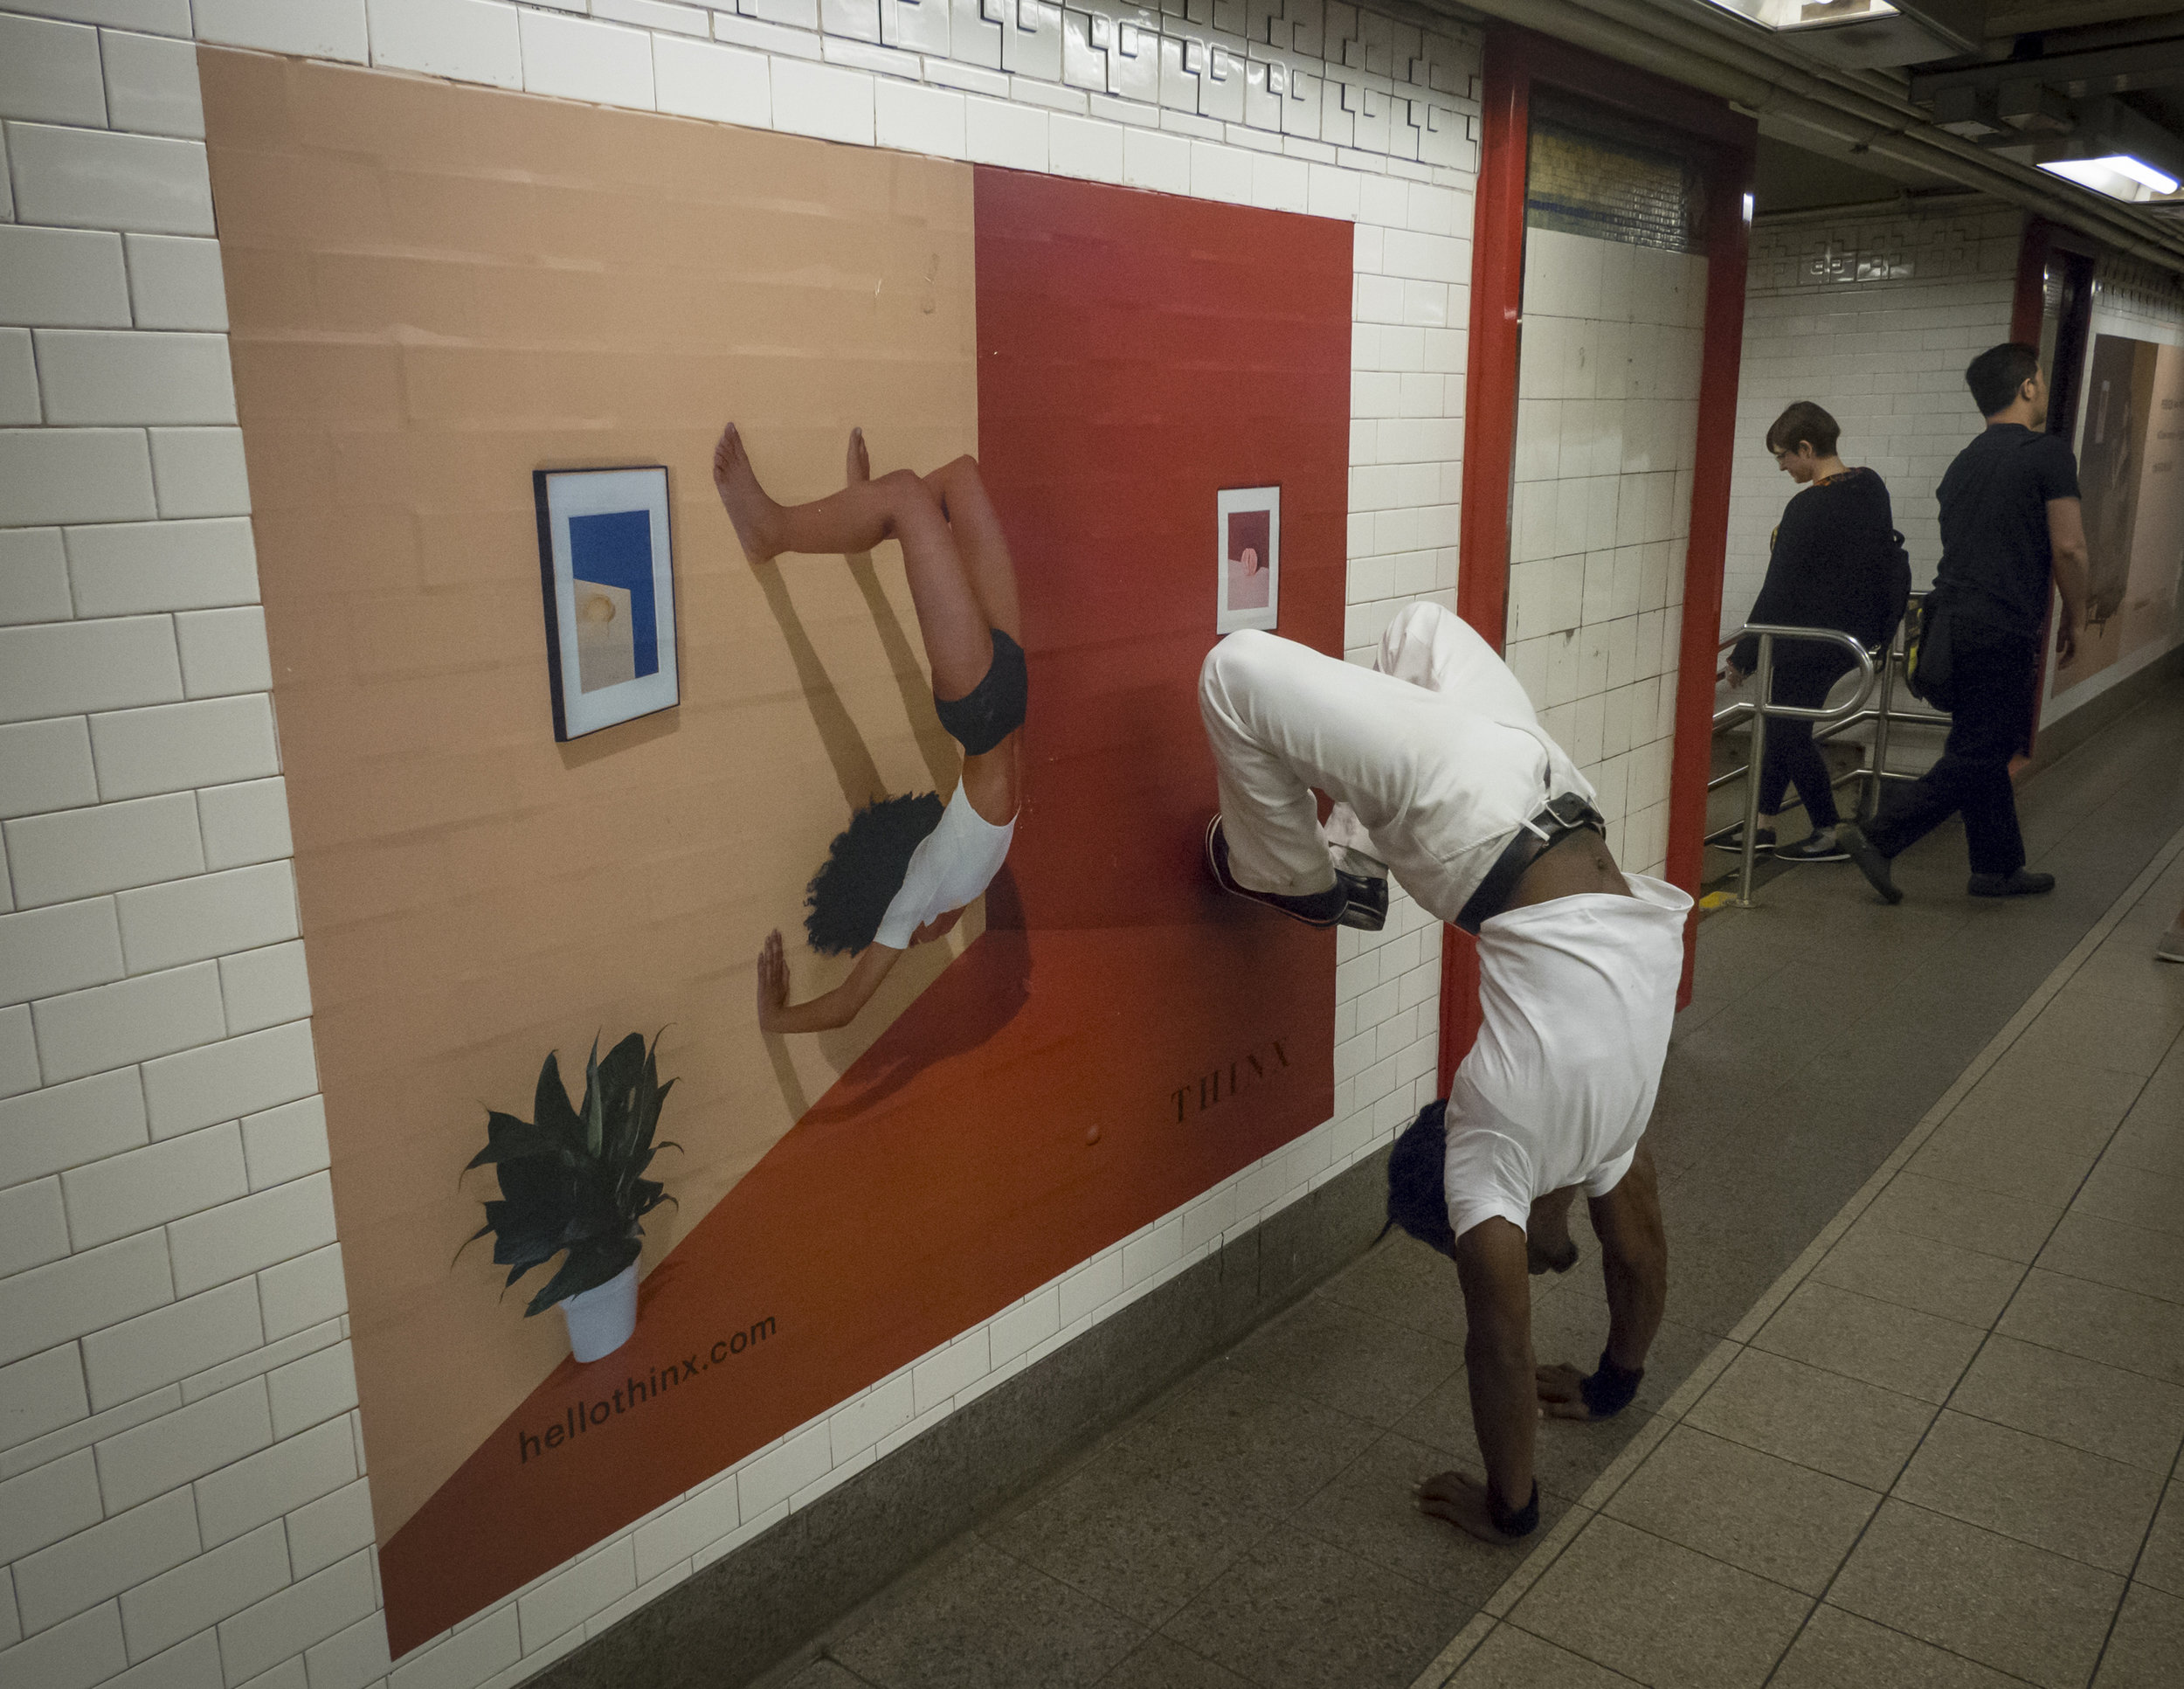 Honorable MentionAnthony Delmundo/Daily News SUBWAY HANDSTANDPersonal trainer and dance instructor Michael Mason shows off and performs a handstand for commuters at Union Square station in New York on Friday, June 10, 2016.